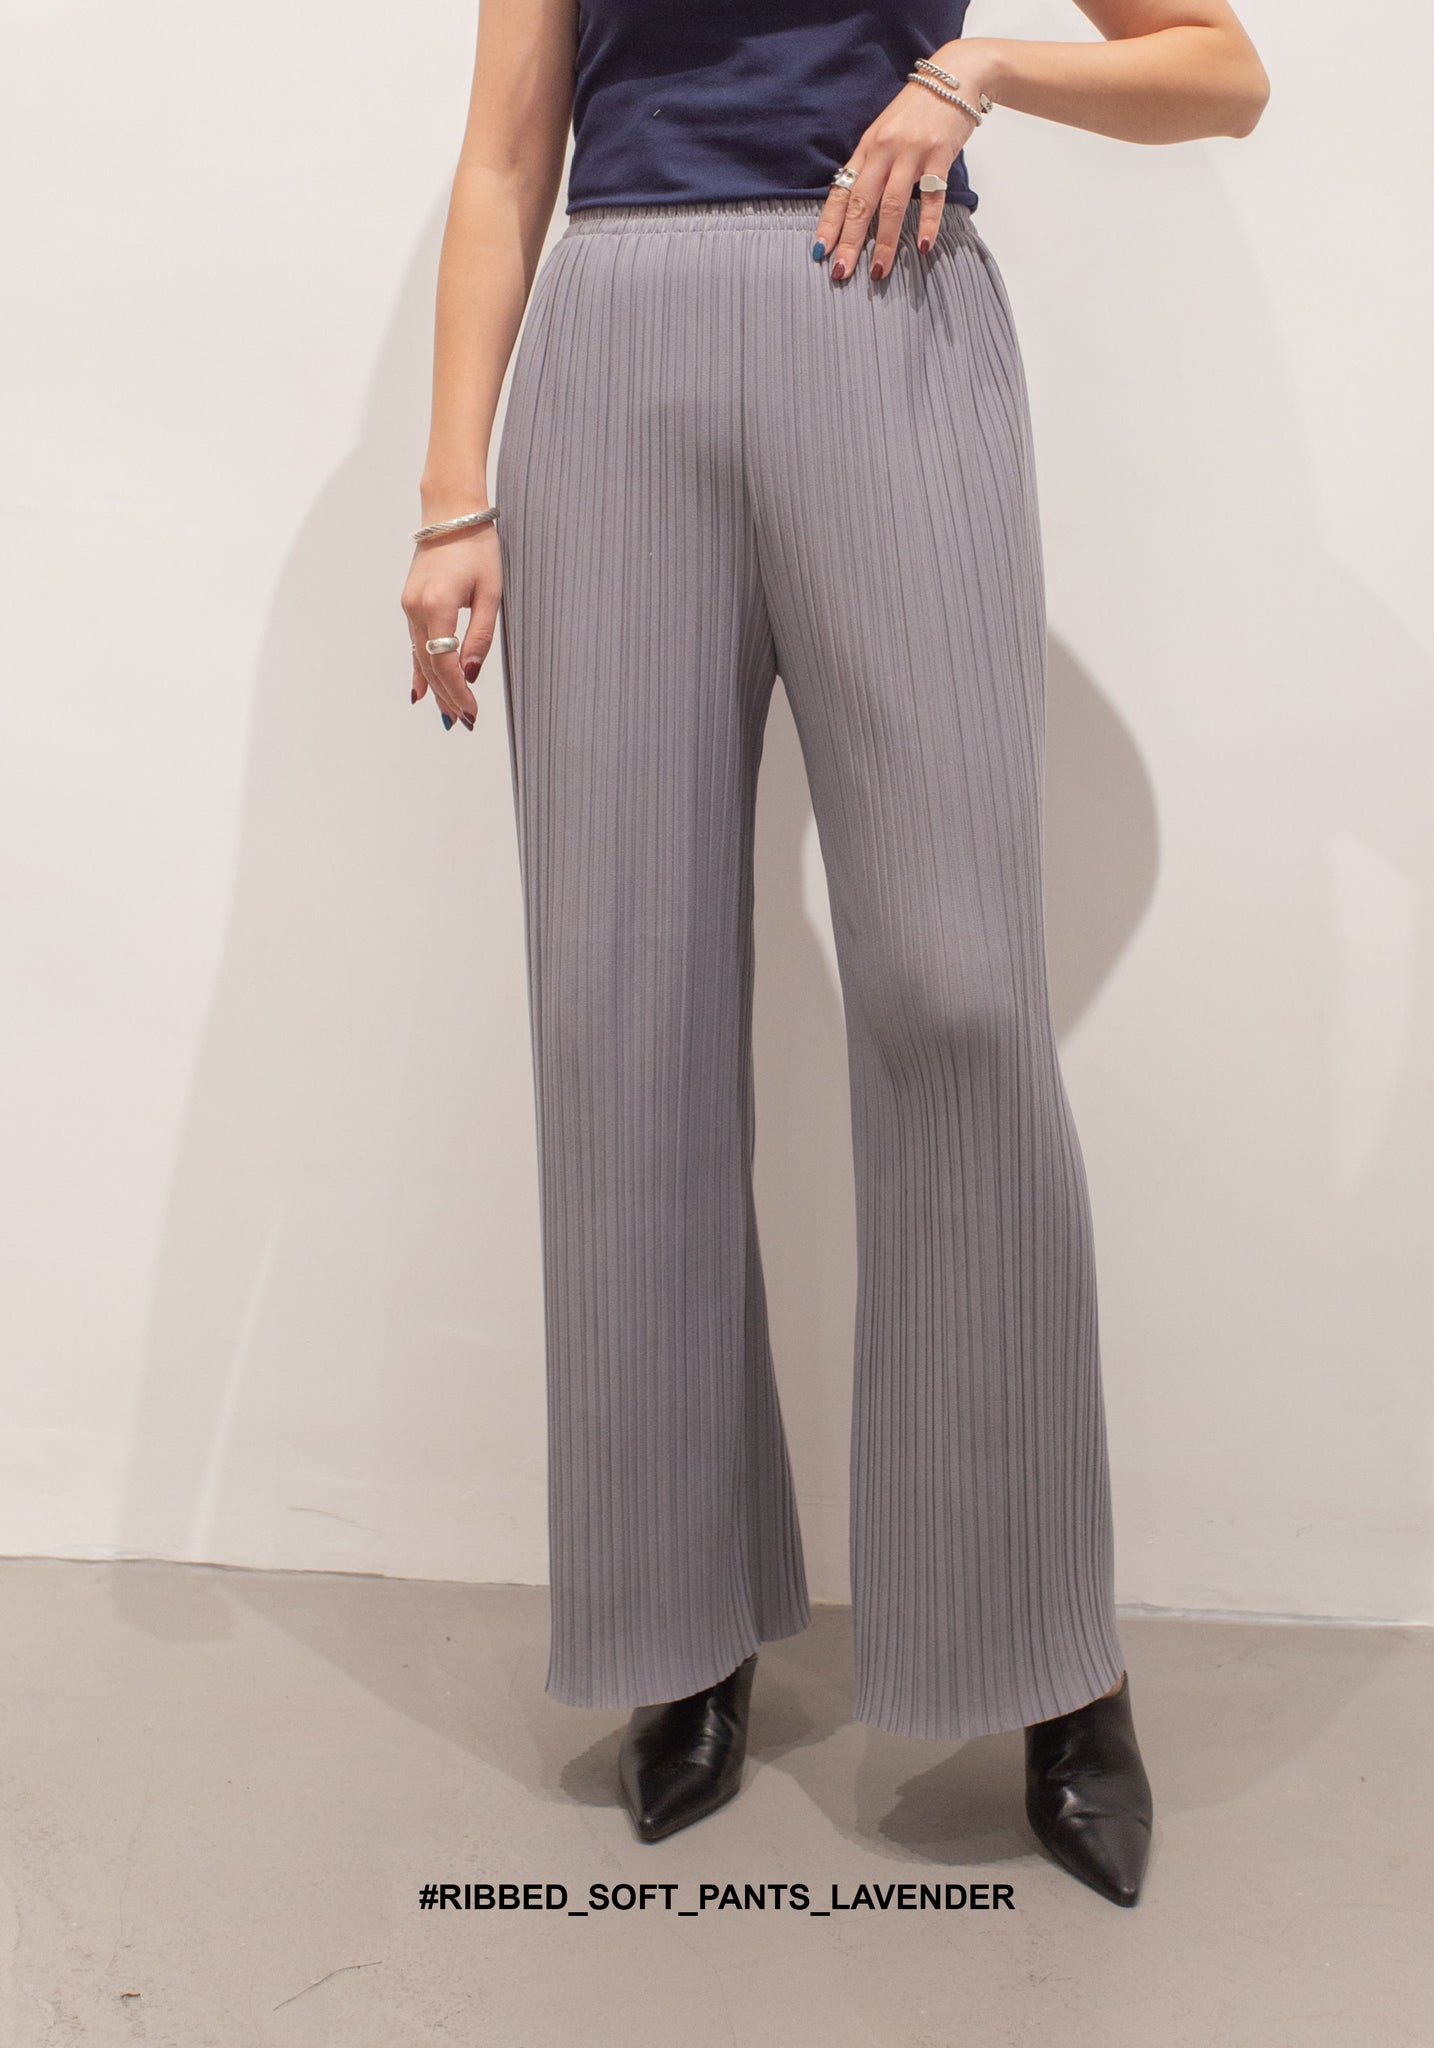 Ribbed Soft Pants Lavender - whoami